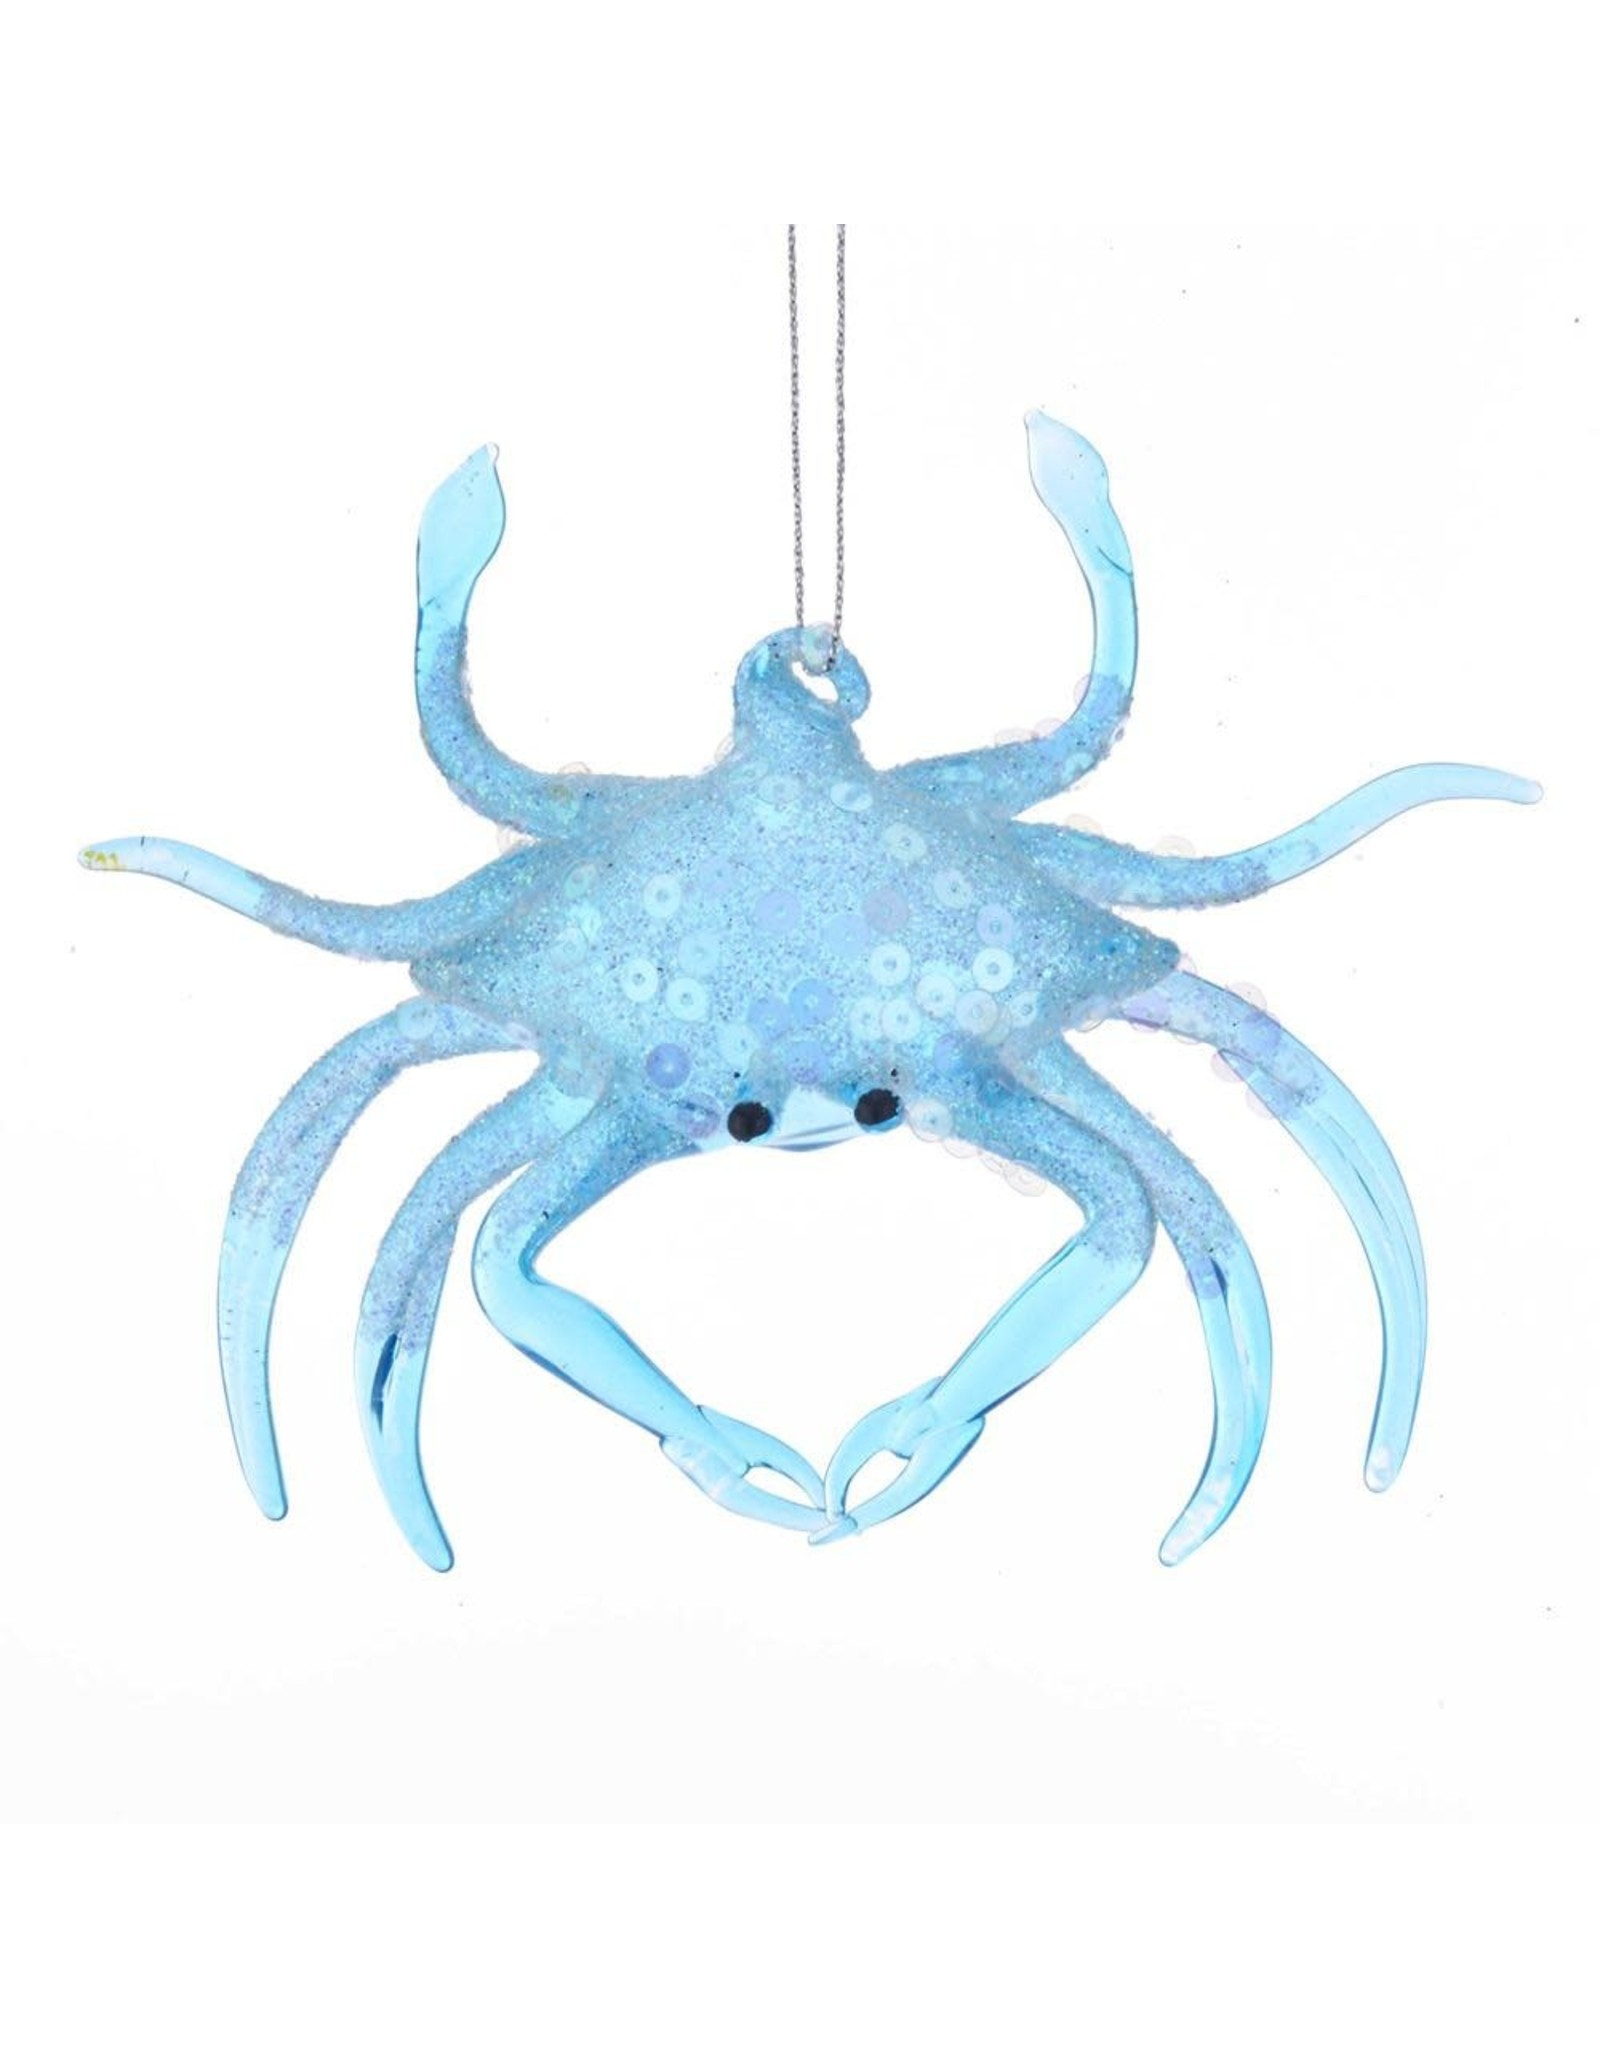 Kurt Adler Blue Glass Crab Ornament With Glitter And Sequins